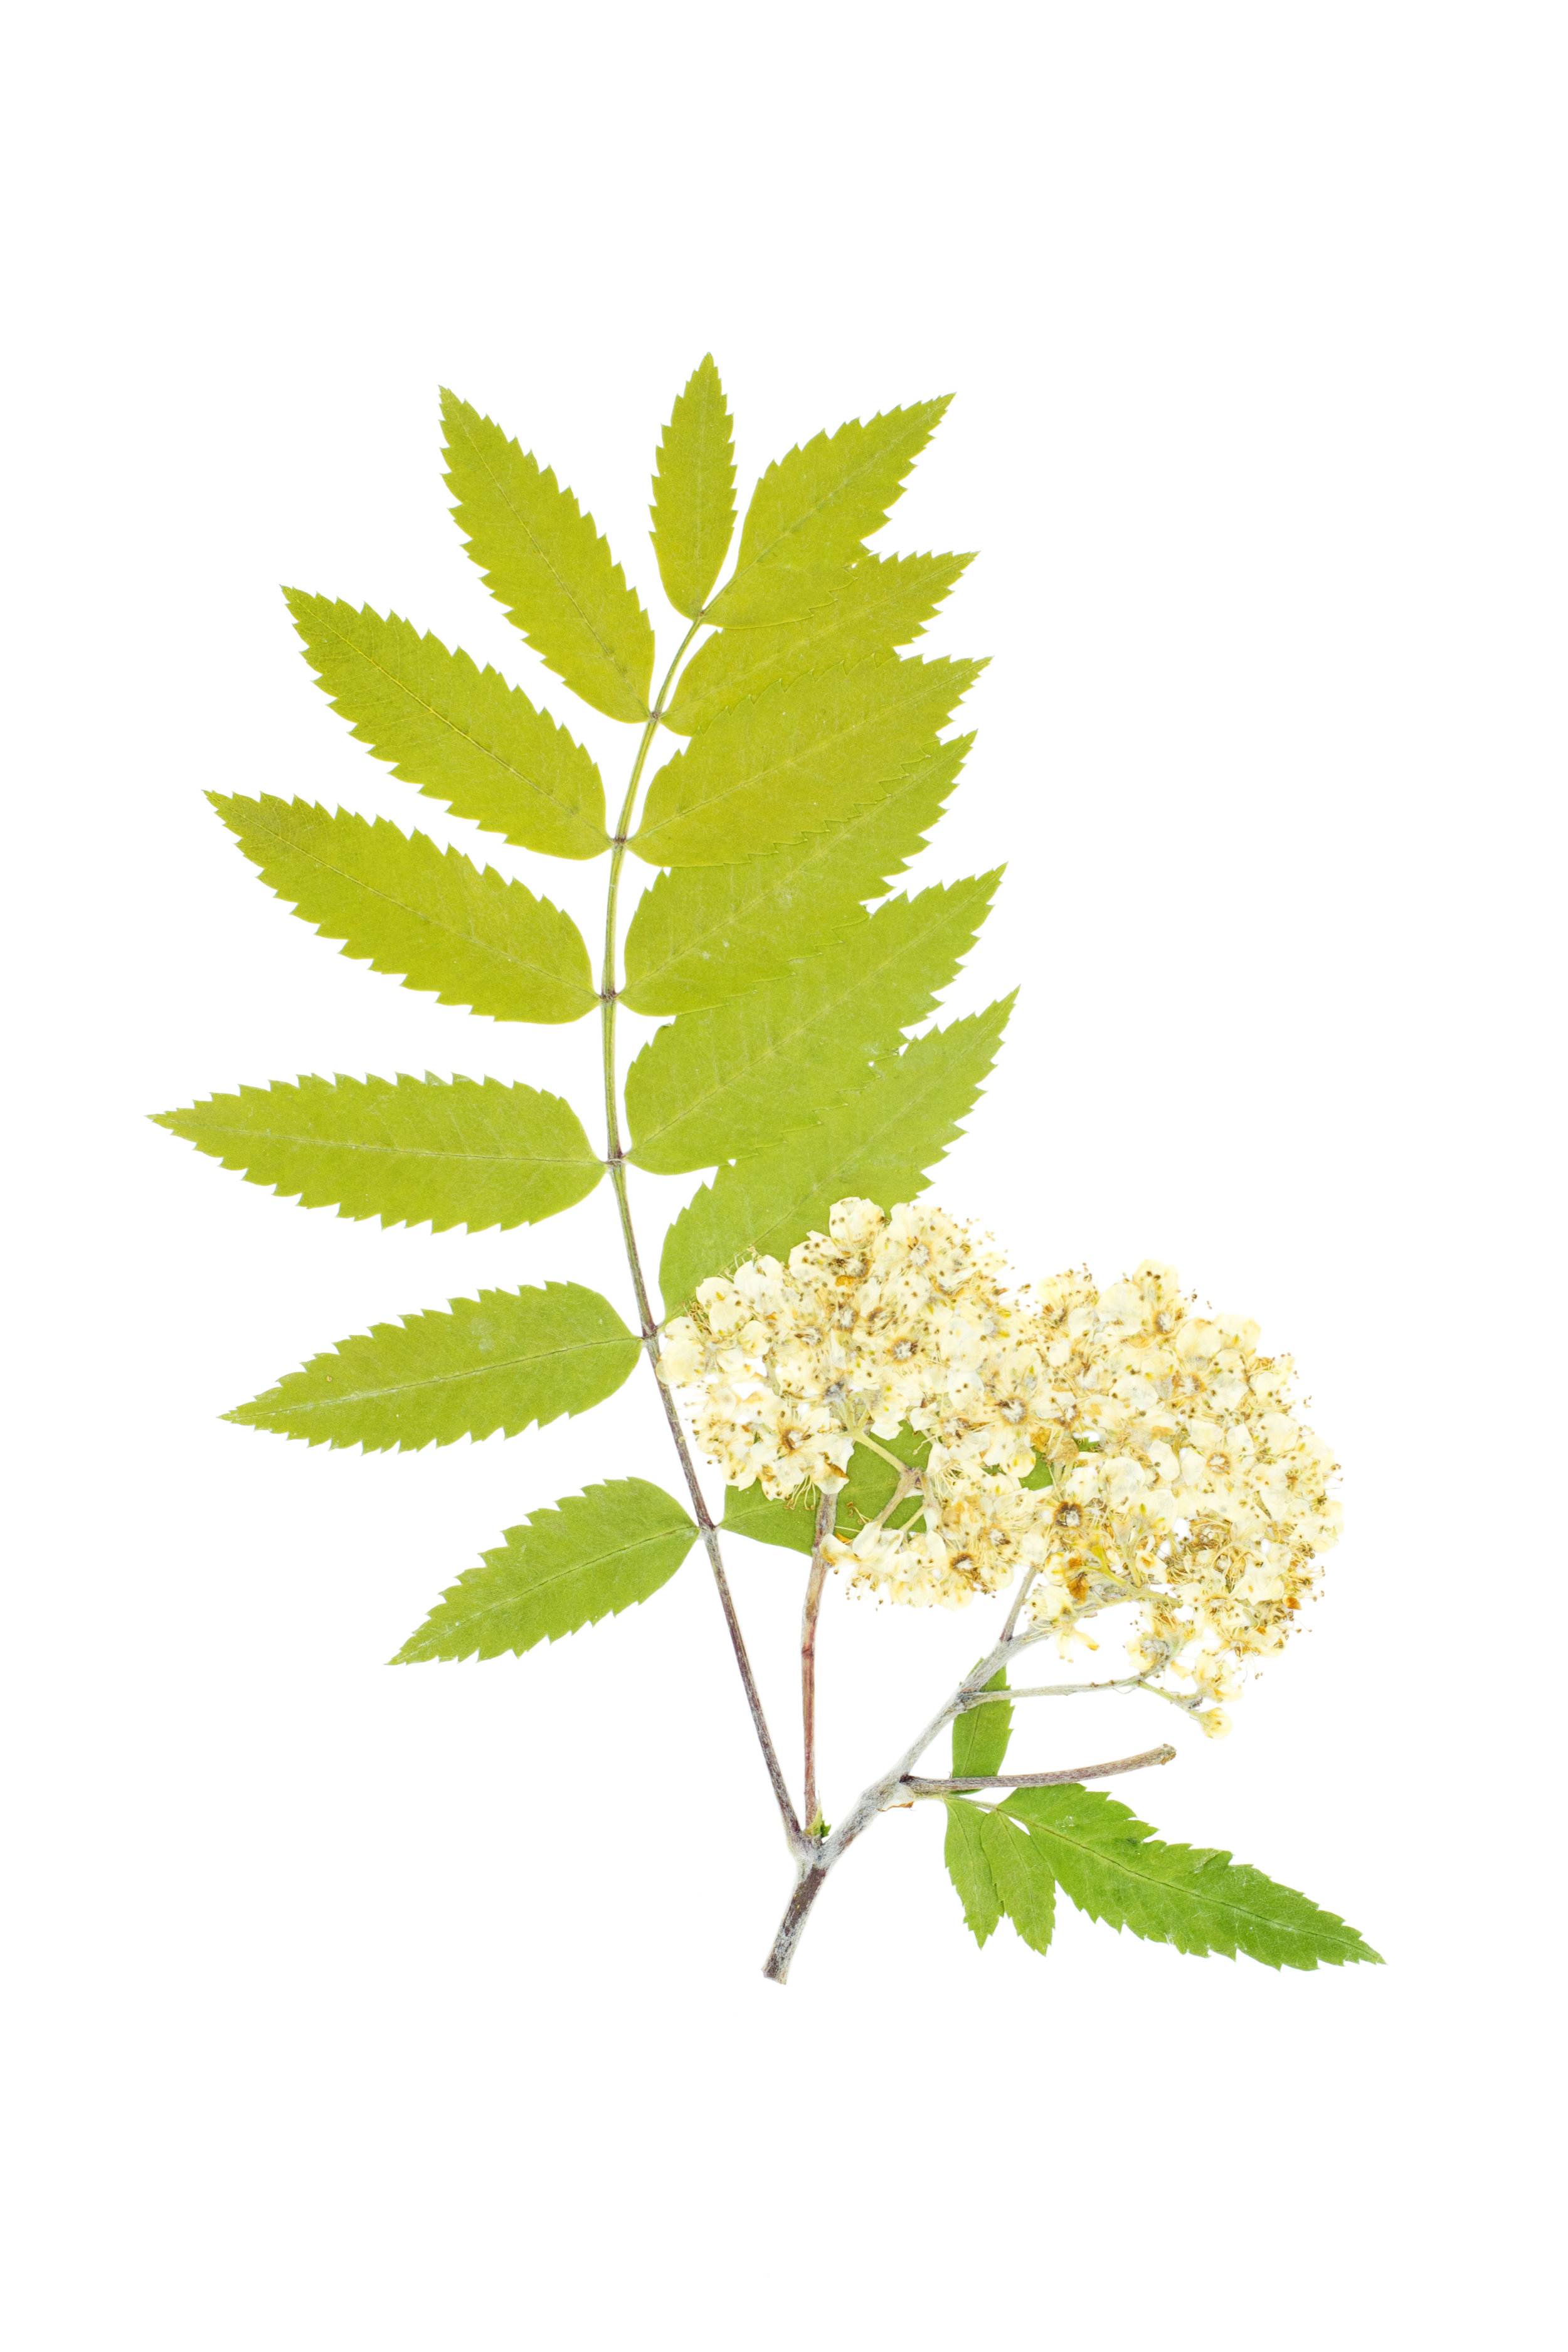 Mountain Ash / Sorbus aucuparia